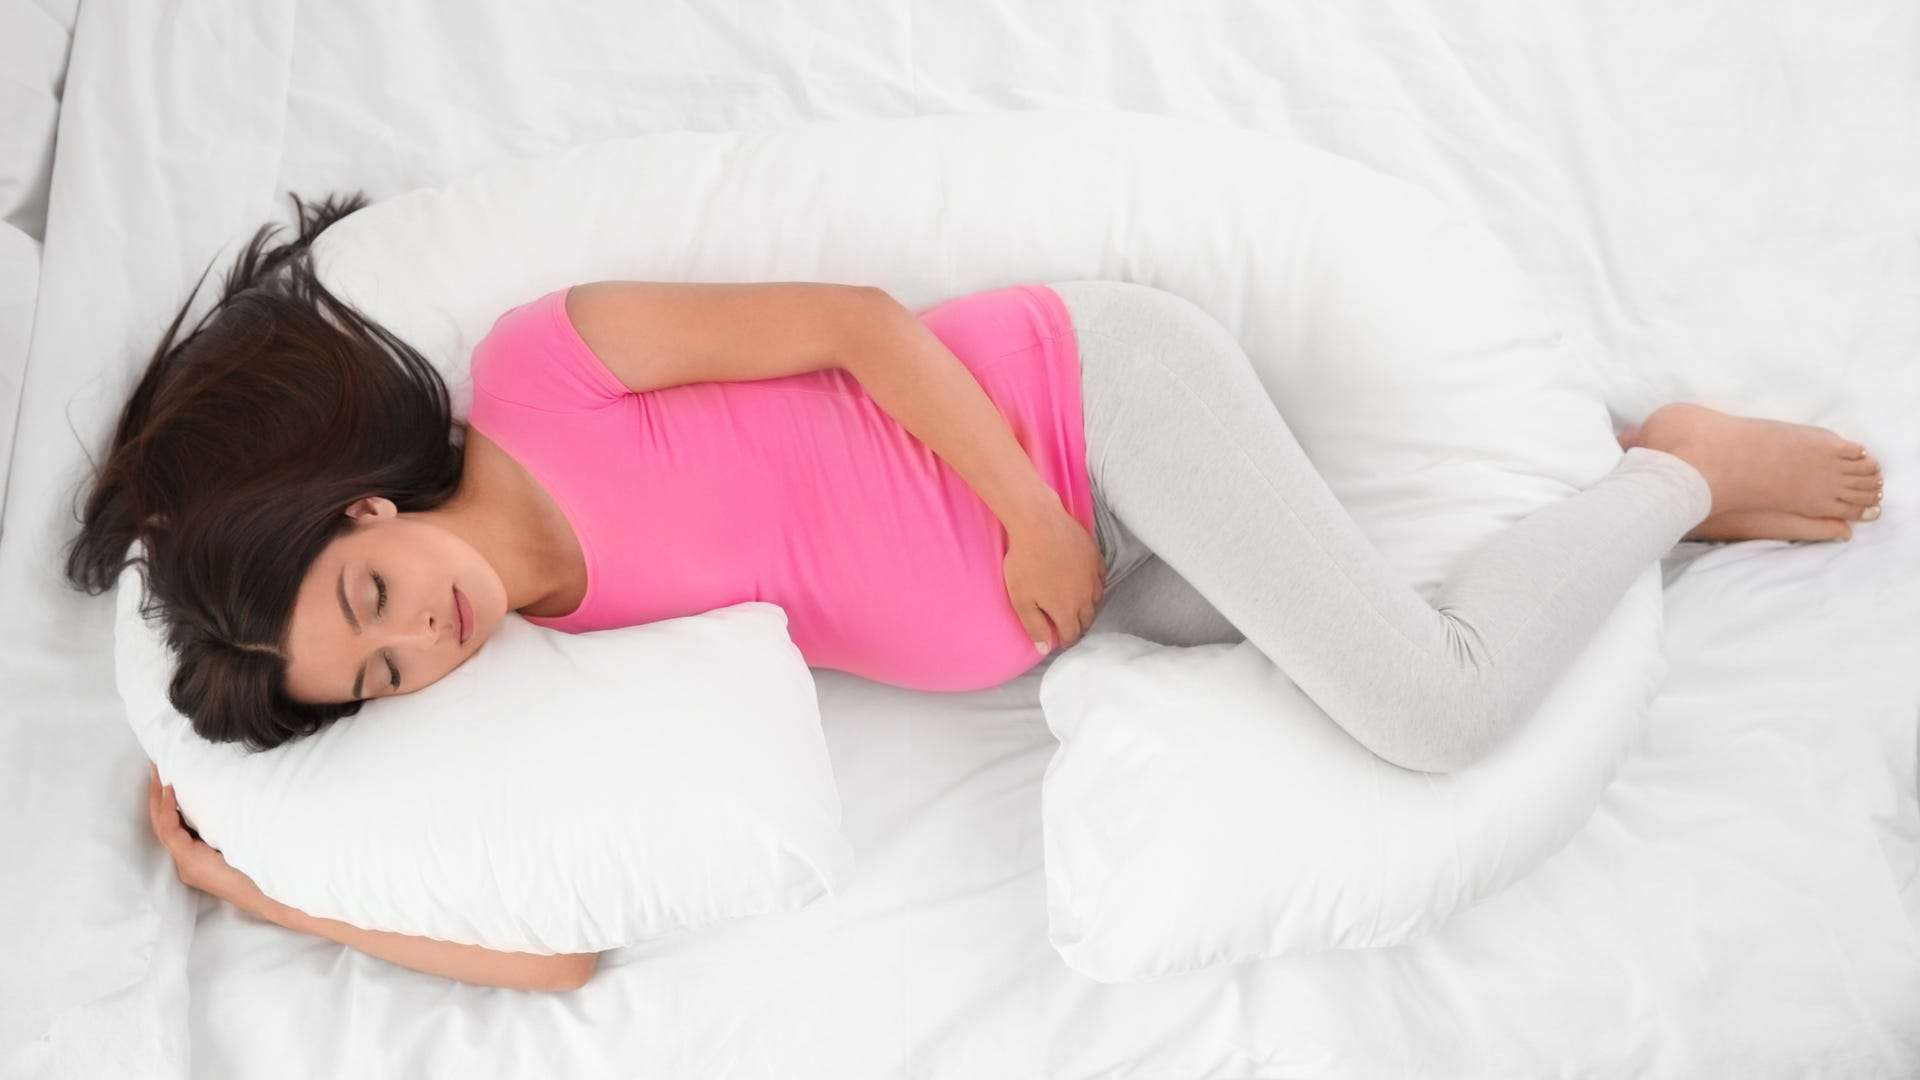 Insomnia during pregnancy: How to sleep better when pregnant - Insider